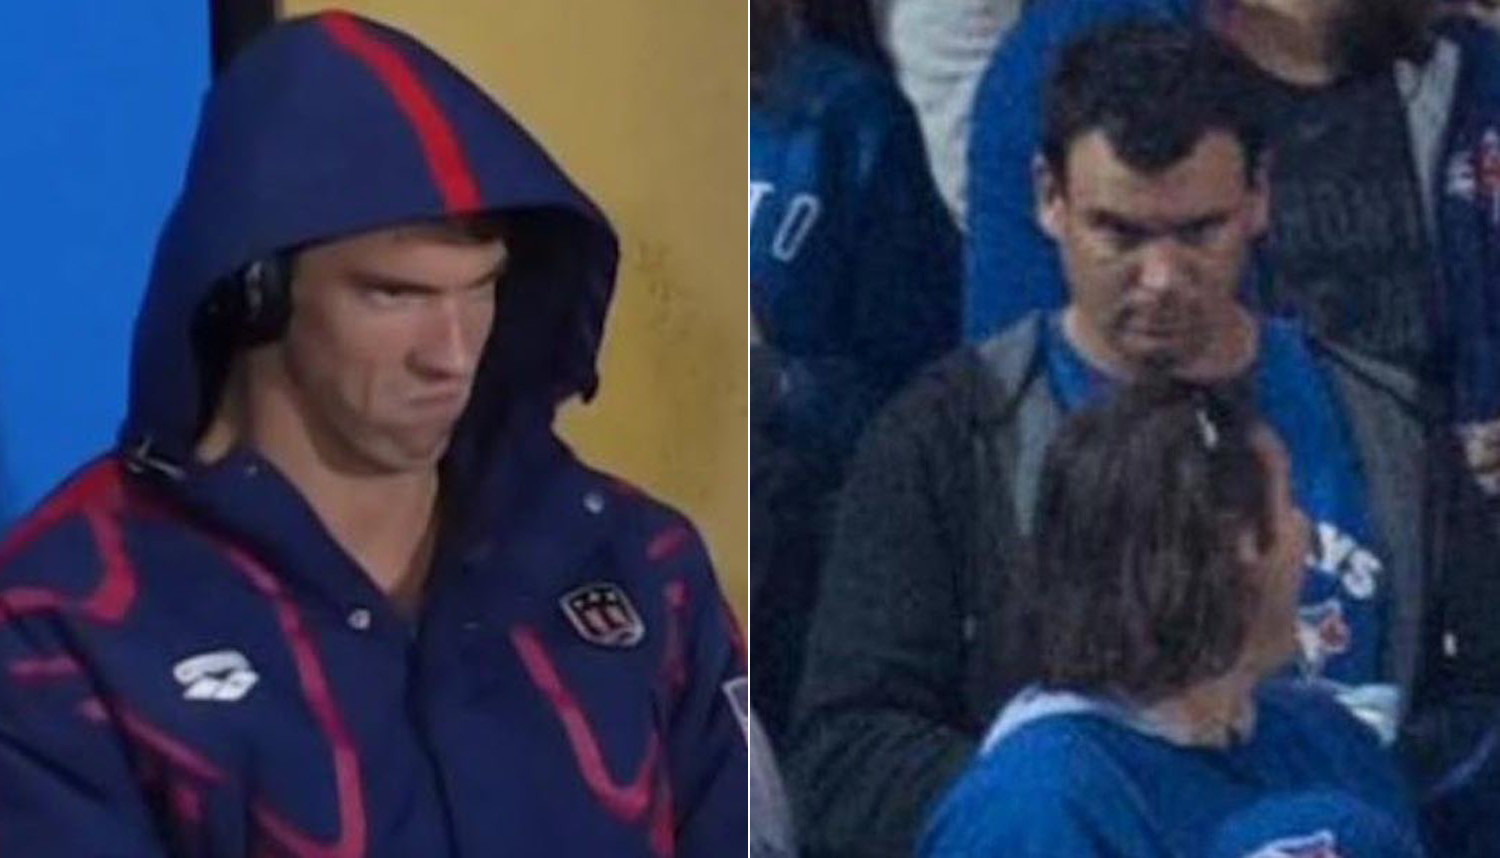 Bal-new-career-path-for-toronto-s-alleged-can-thrower-phelpsface-impersonator-20161006